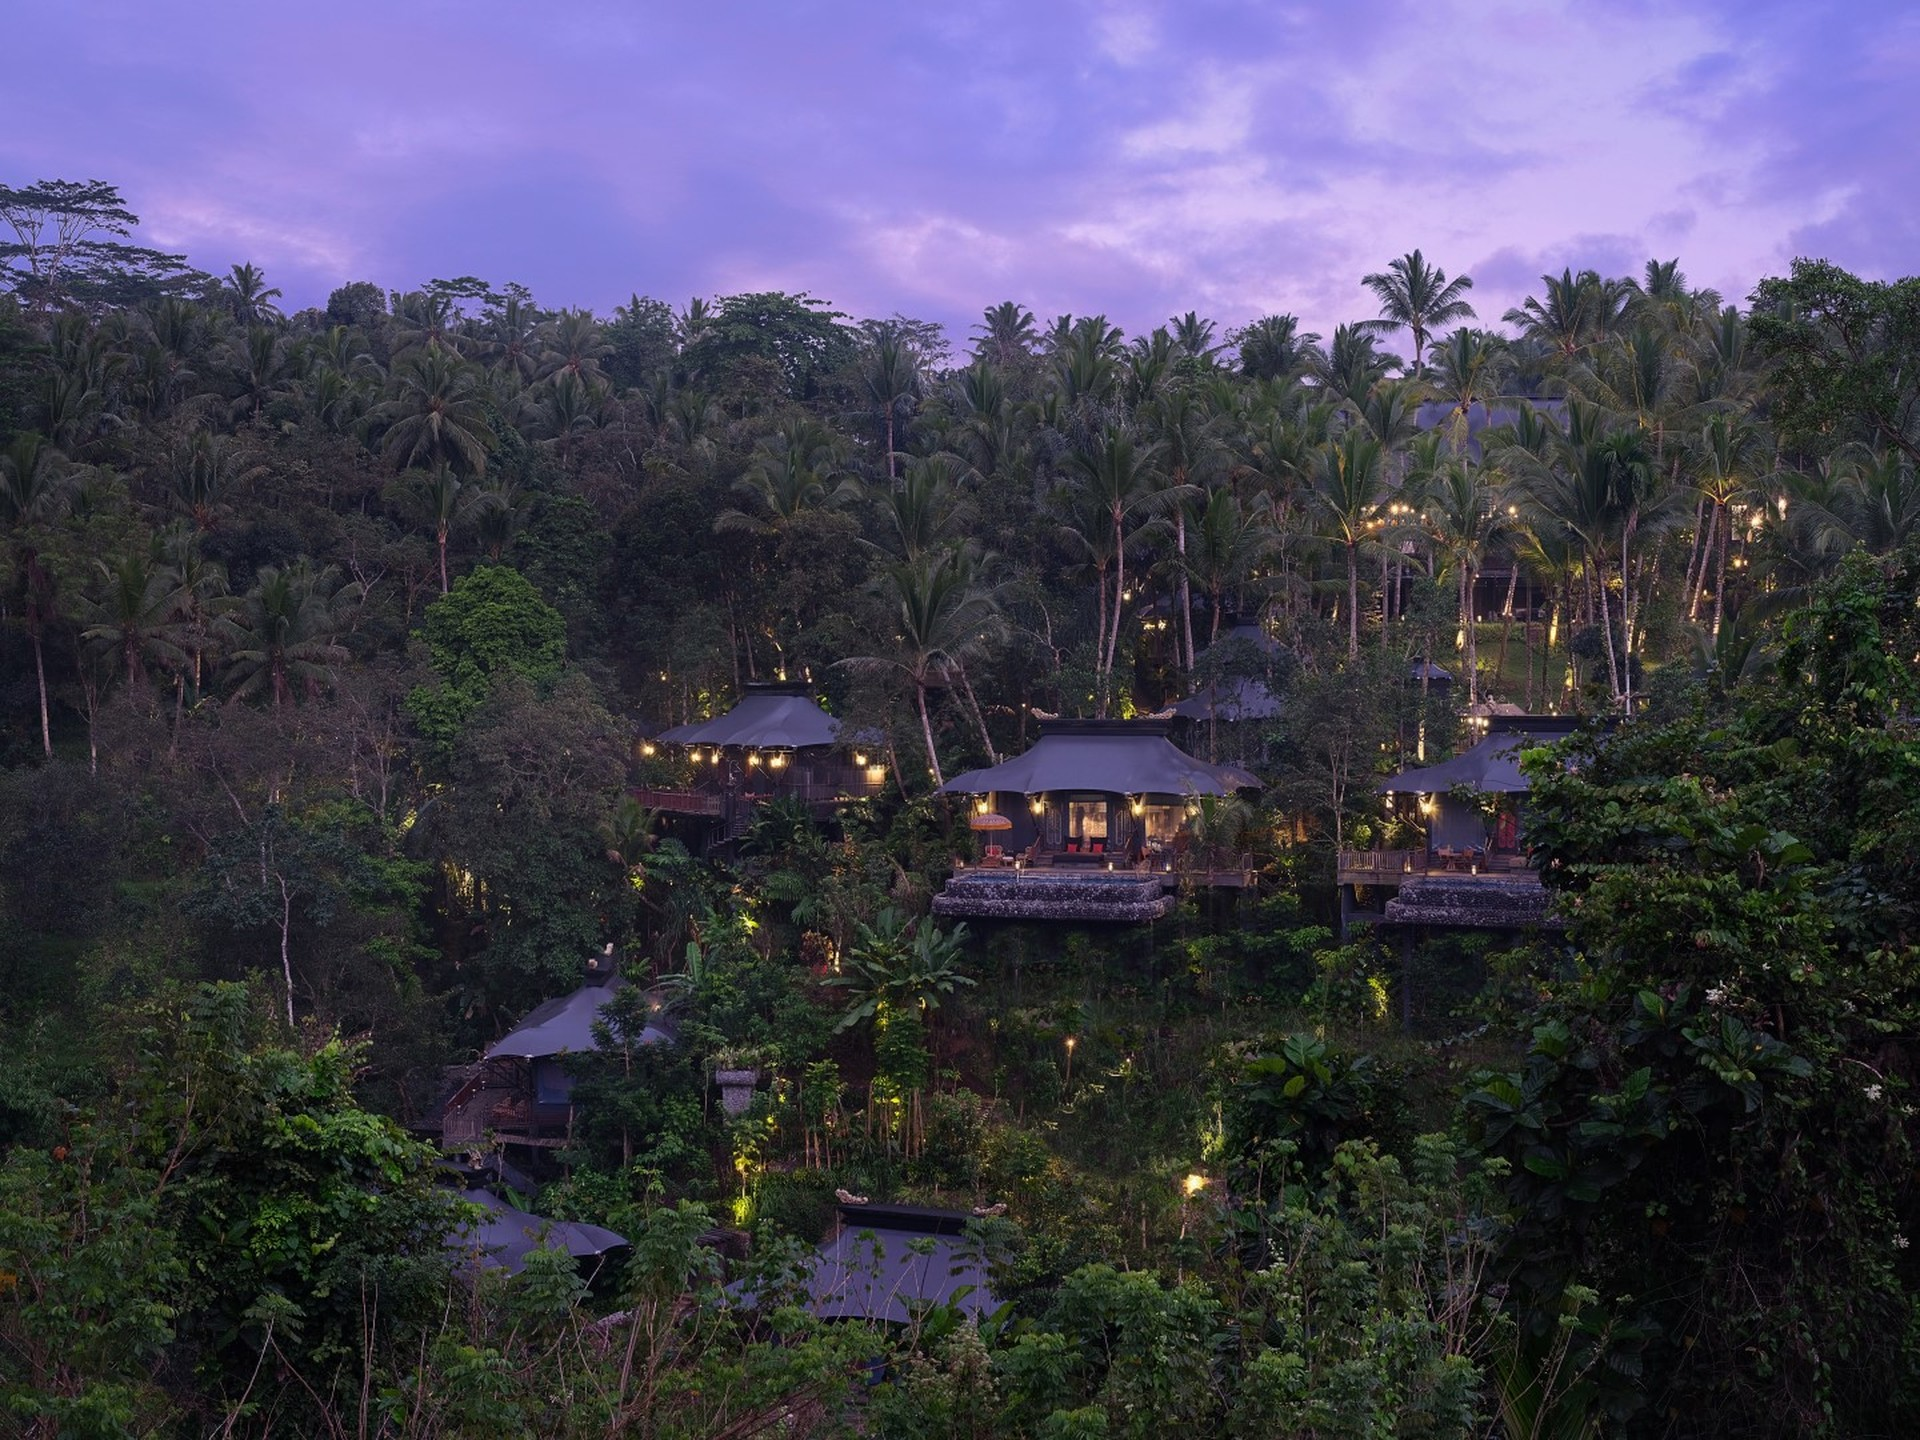 ubud-accommodation-tentoverview-fromacross-thevalley (Large).jpg